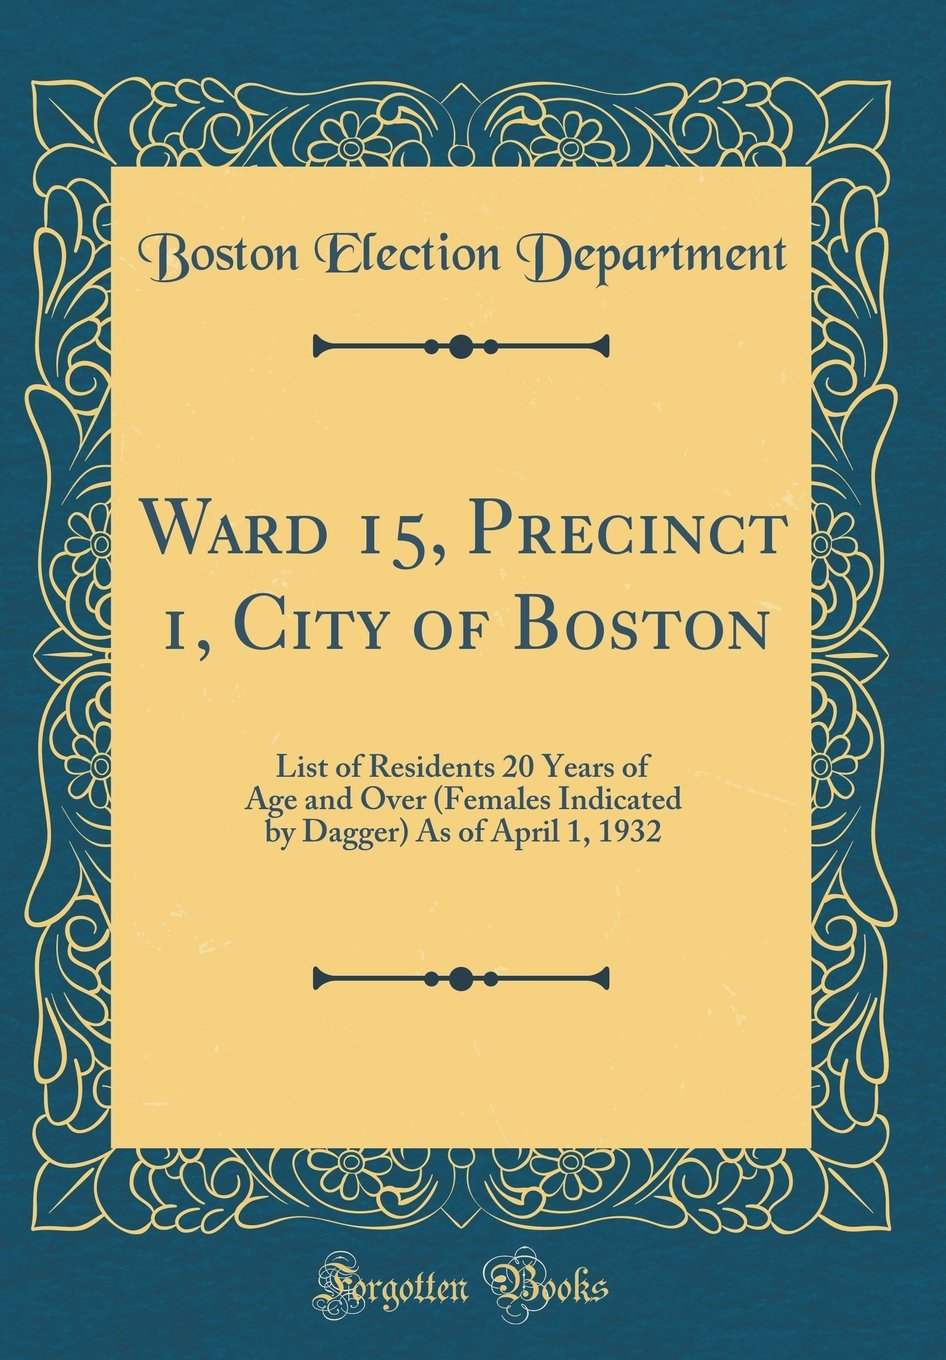 Ward 15, Precinct 1, City of Boston: List of Residents 20 Years of Age and Over (Females Indicated by Dagger) as of April 1, 1932 (Classic Reprint) PDF